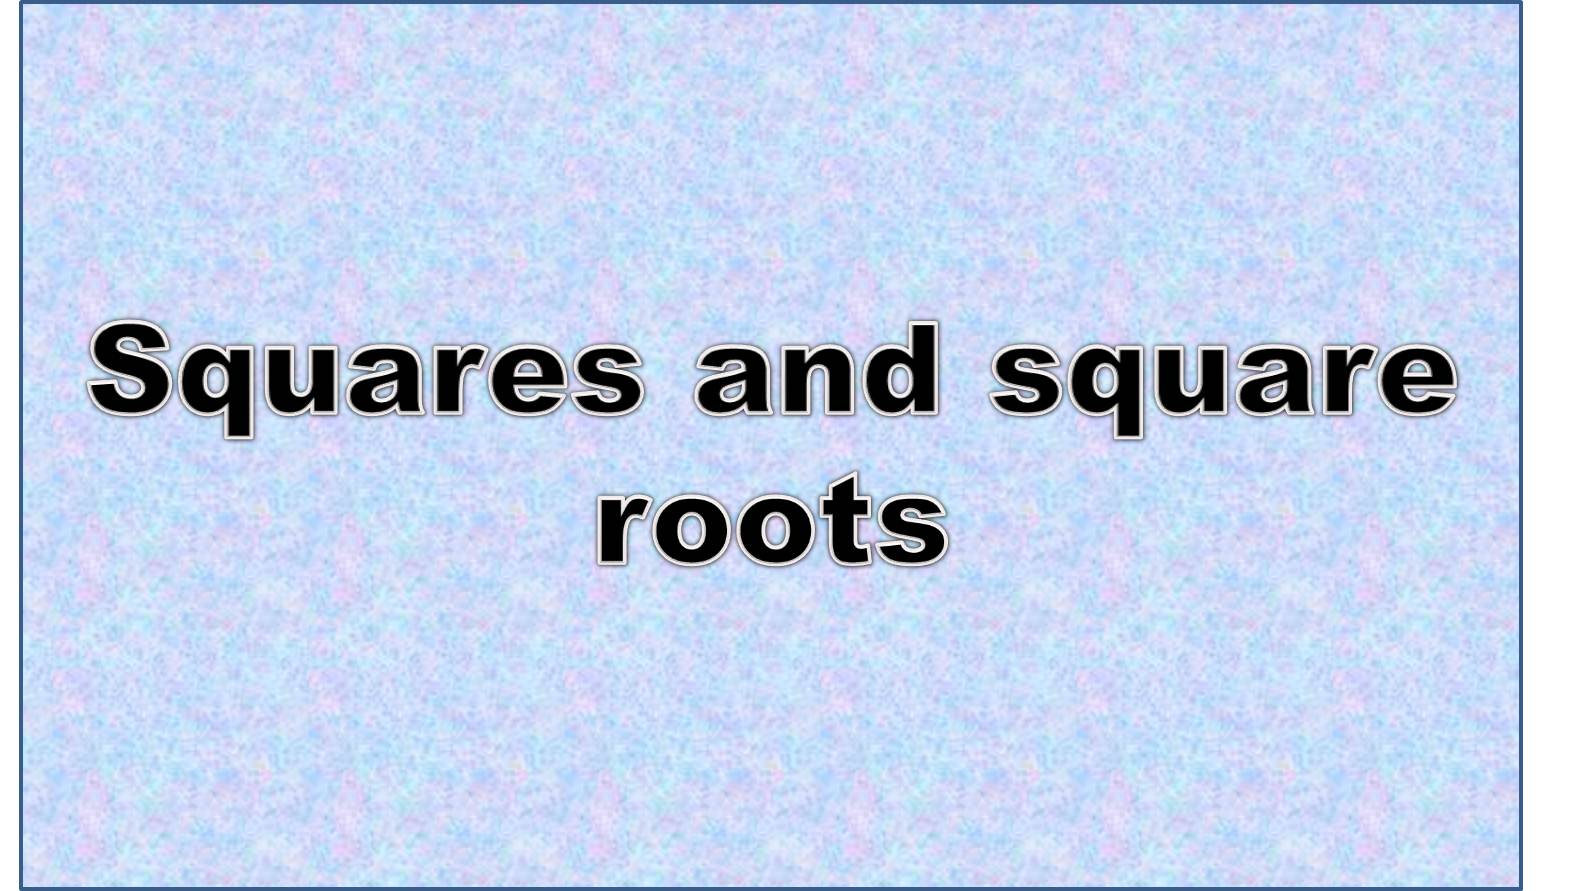 http://study.aisectonline.com/images/Approximating square roots to hundredths.jpg